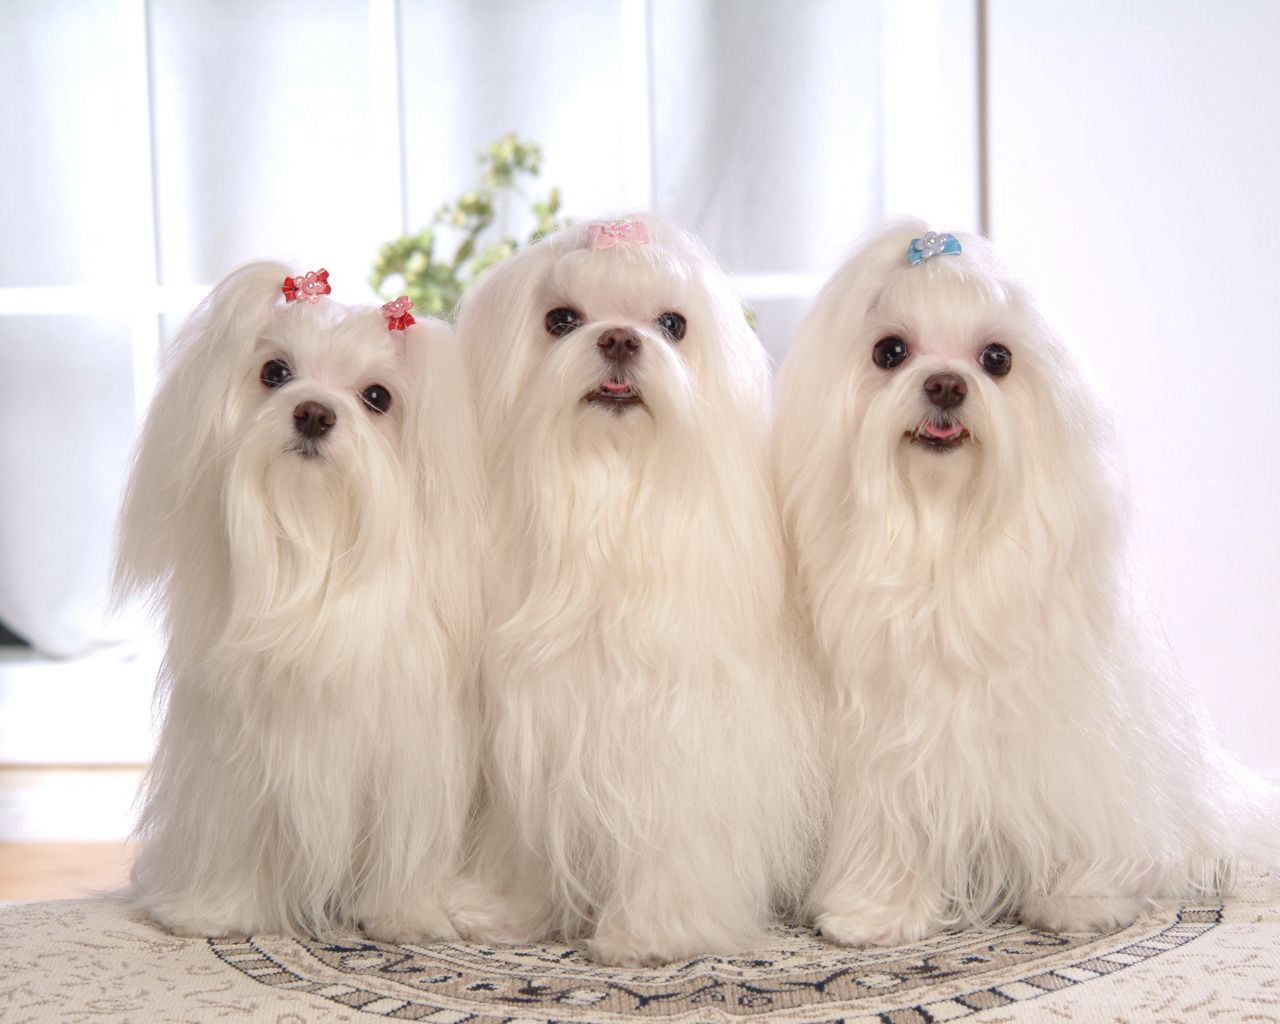 All List Of Different Dogs Breeds: Information on Cute Maltese Dogs